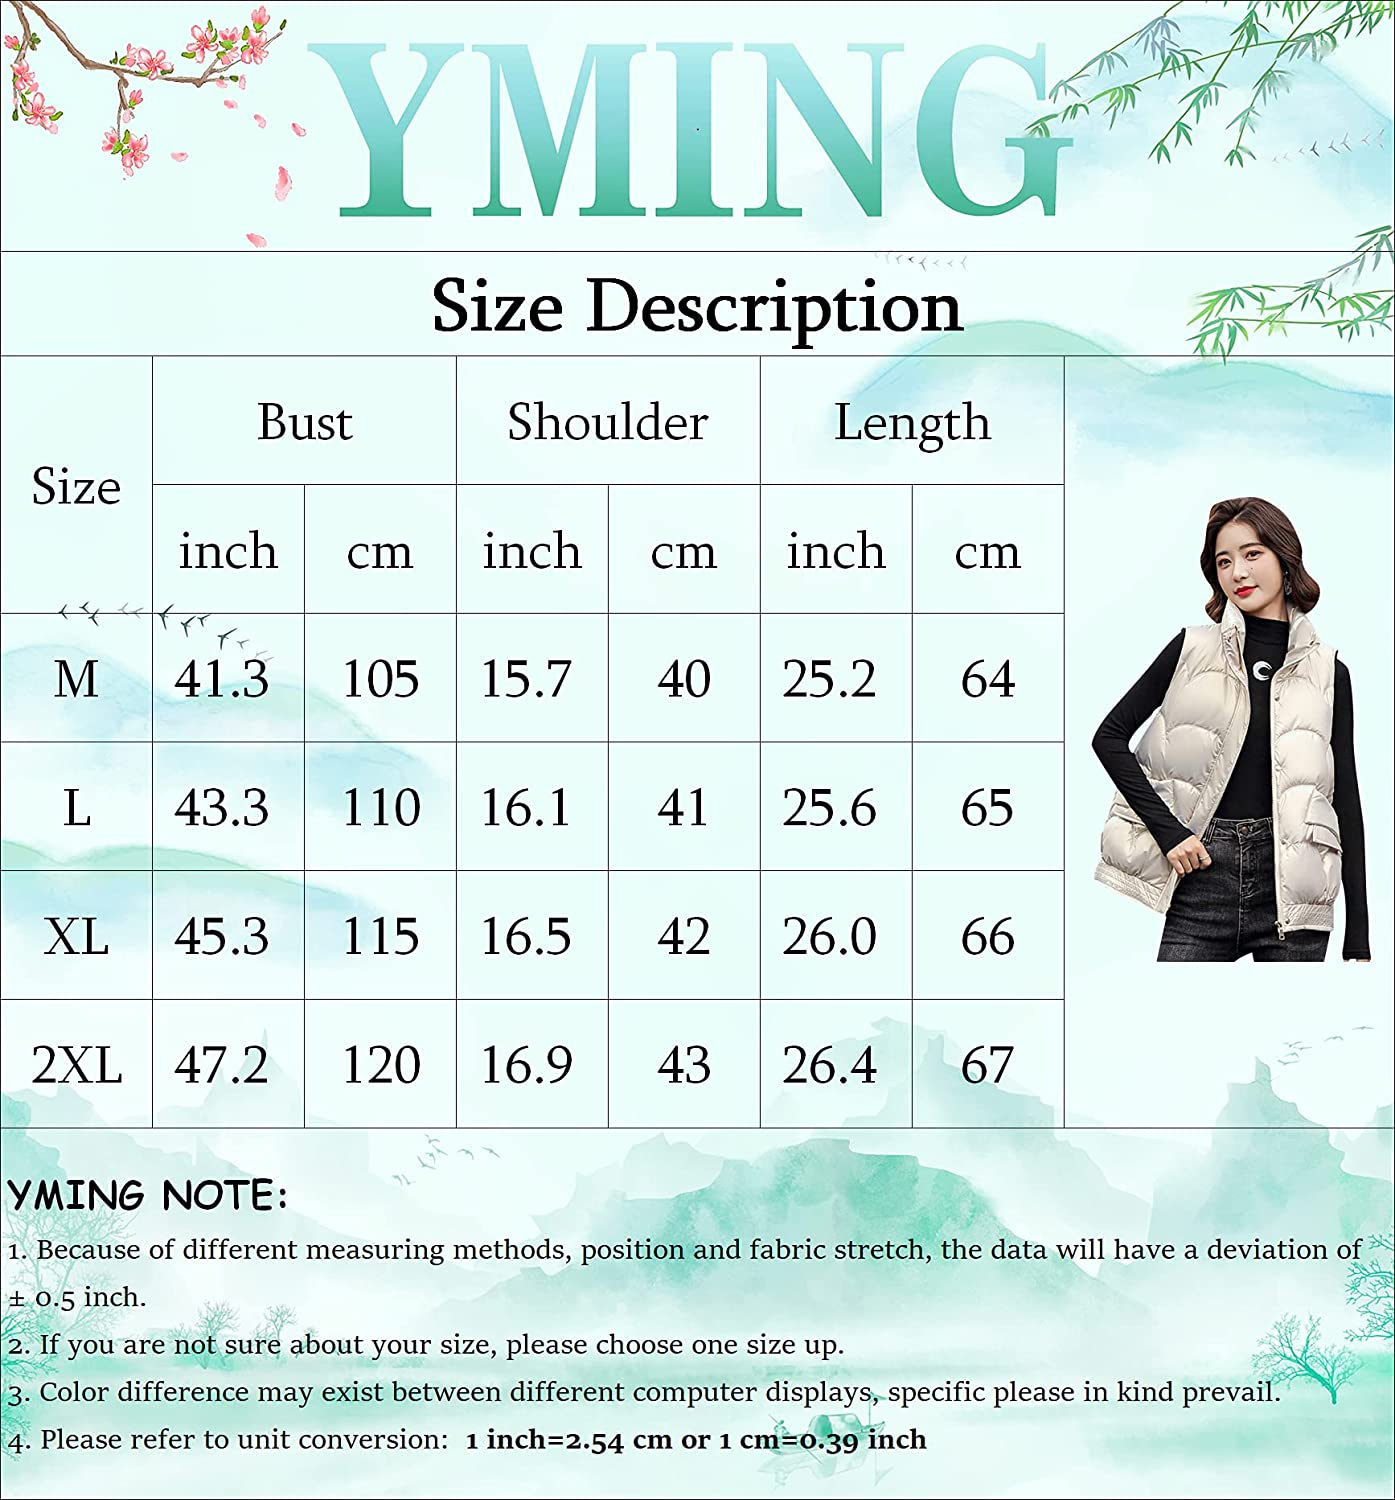 YMING Womens Metallic Solid Color Puffer Vest Winter Casual Quilted Outwear Oversized Zipper Lightweight Gilet with Pockets